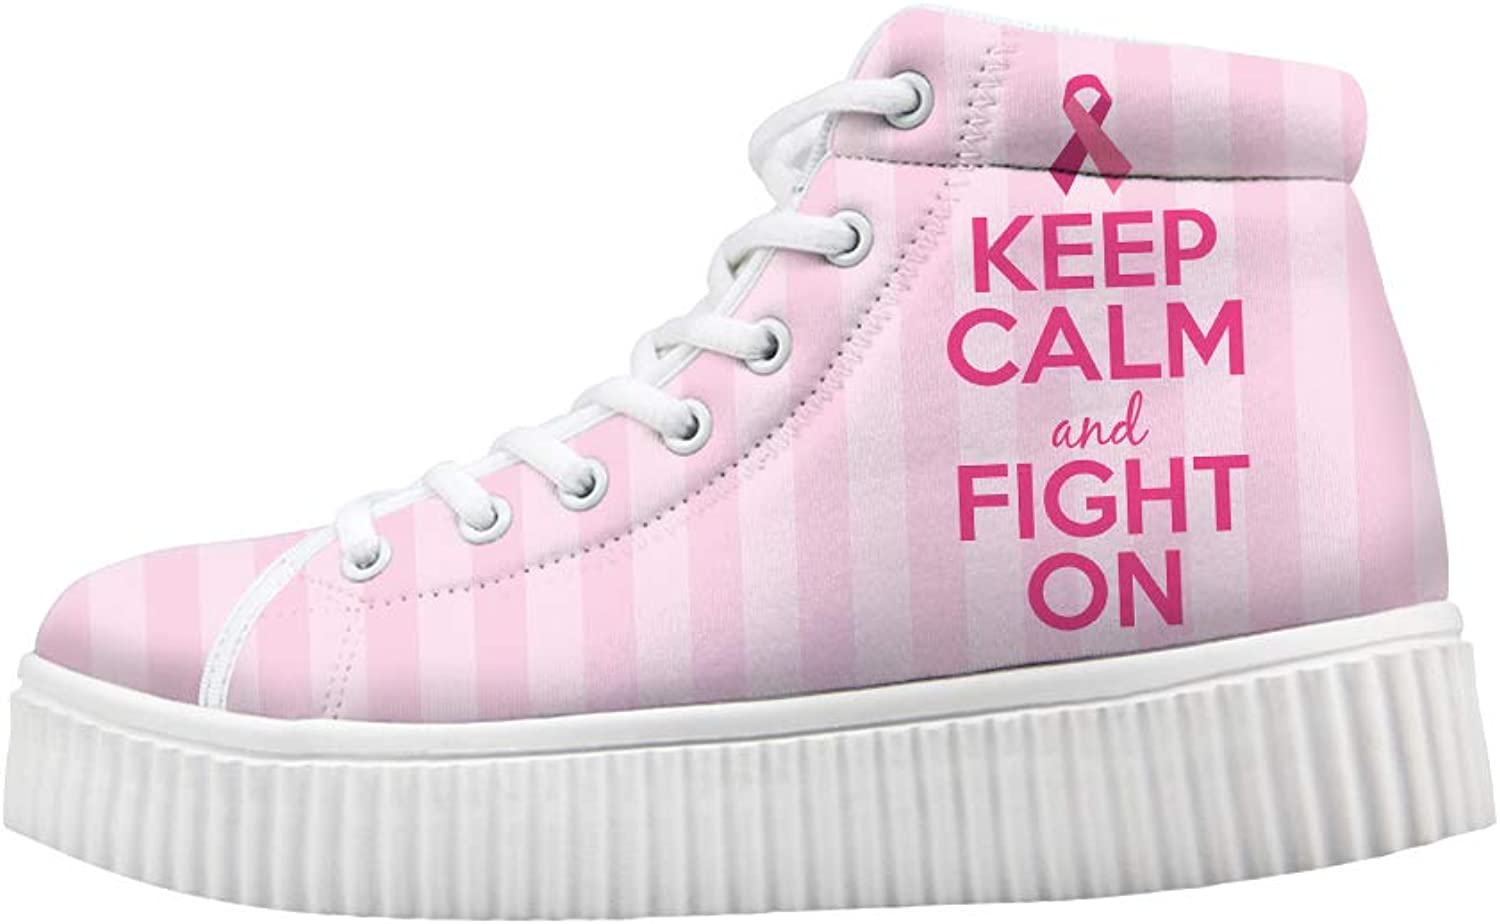 Platform Lace up Sneaker Casual Chunky Walking shoes High Top Women Breast Cancer Awareness Keep Calm and Fight On